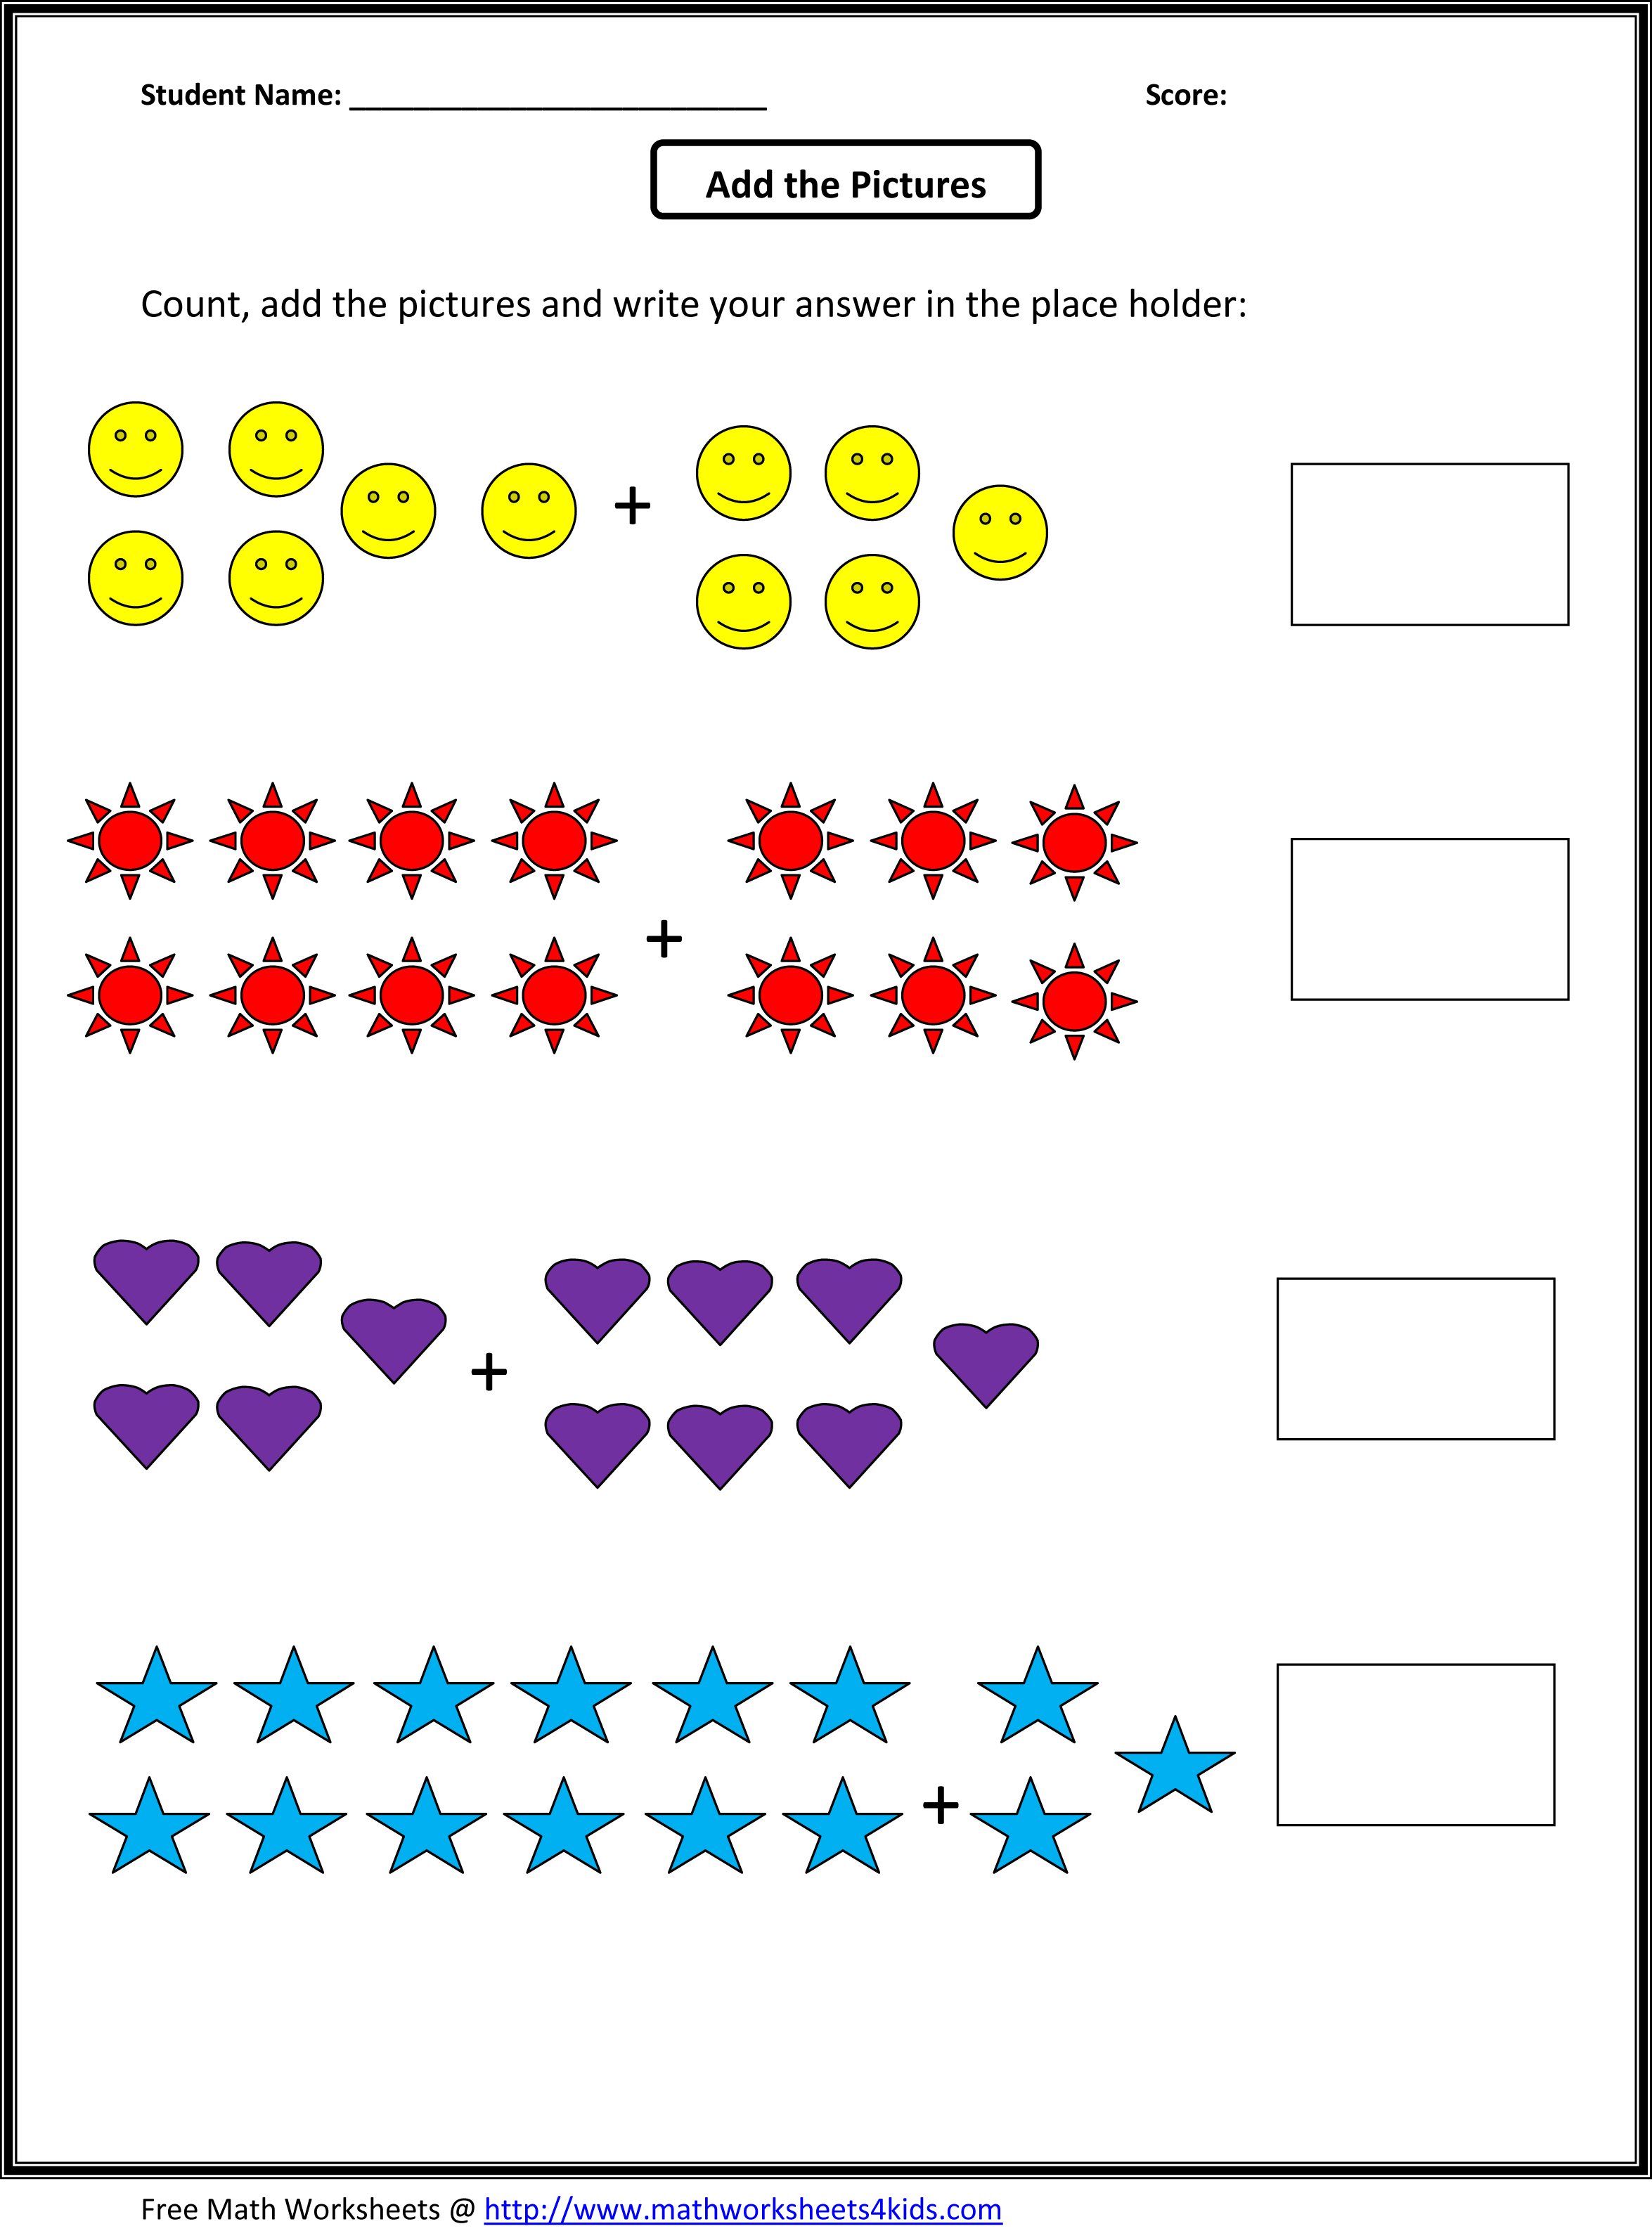 First Grade Worksheets Math Free Printable 1st Grade Math – First Grade Addition Worksheets Free